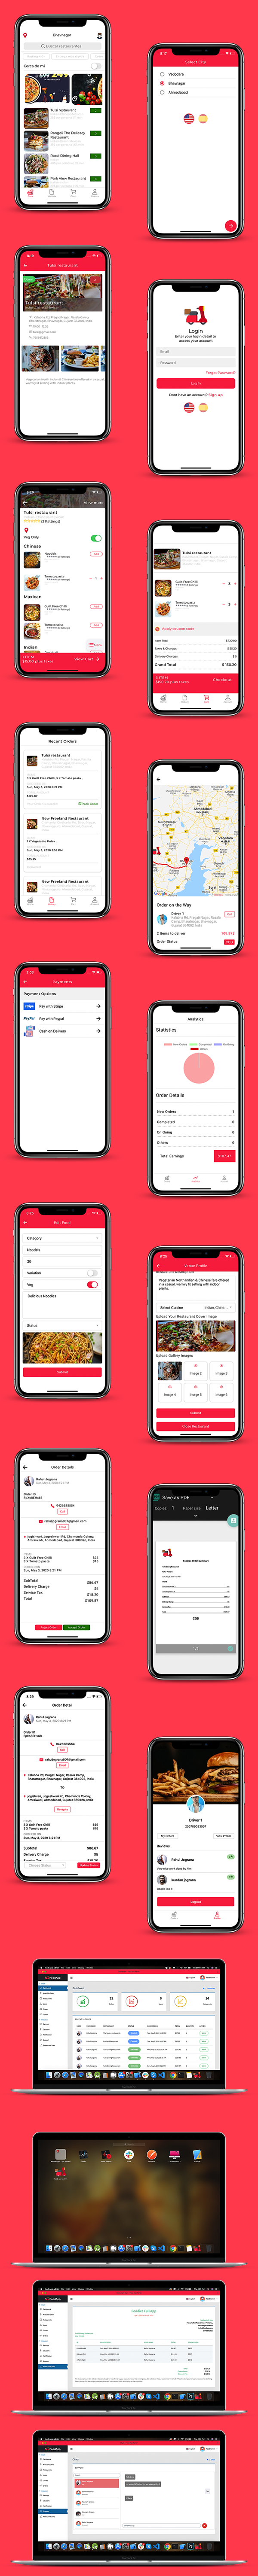 ionic 5 food delivery full (Android + iOS + Admin Panel PWA) app with firebase - 18